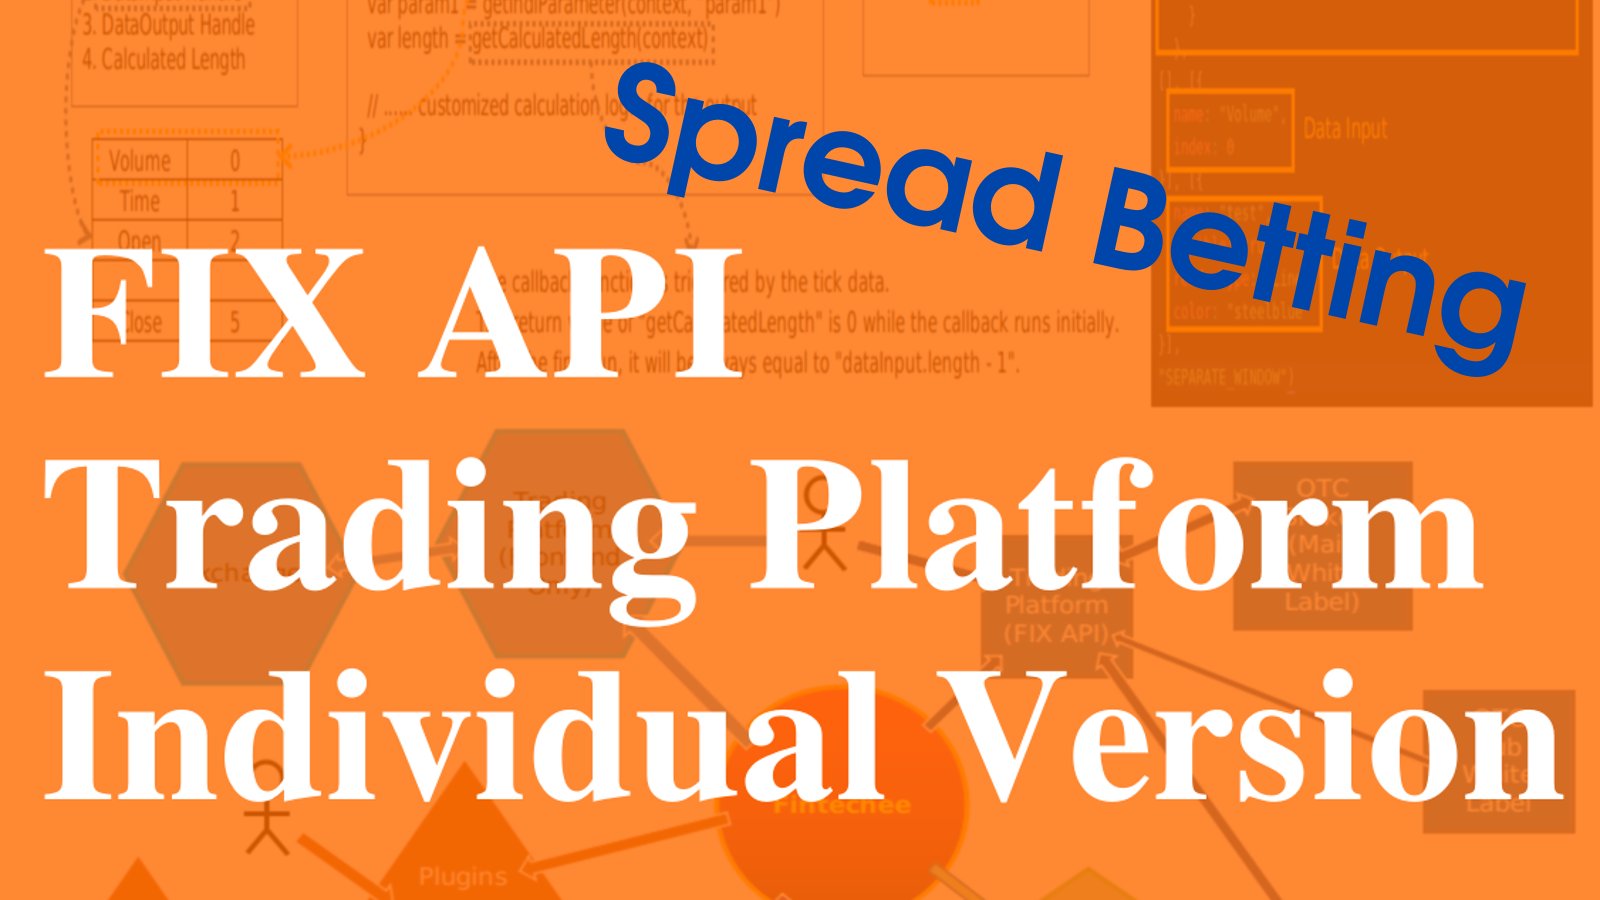 Fintechee: Spread Betting FIX API Trading Platform helps traders connect with liquidity providers and trade with LPs